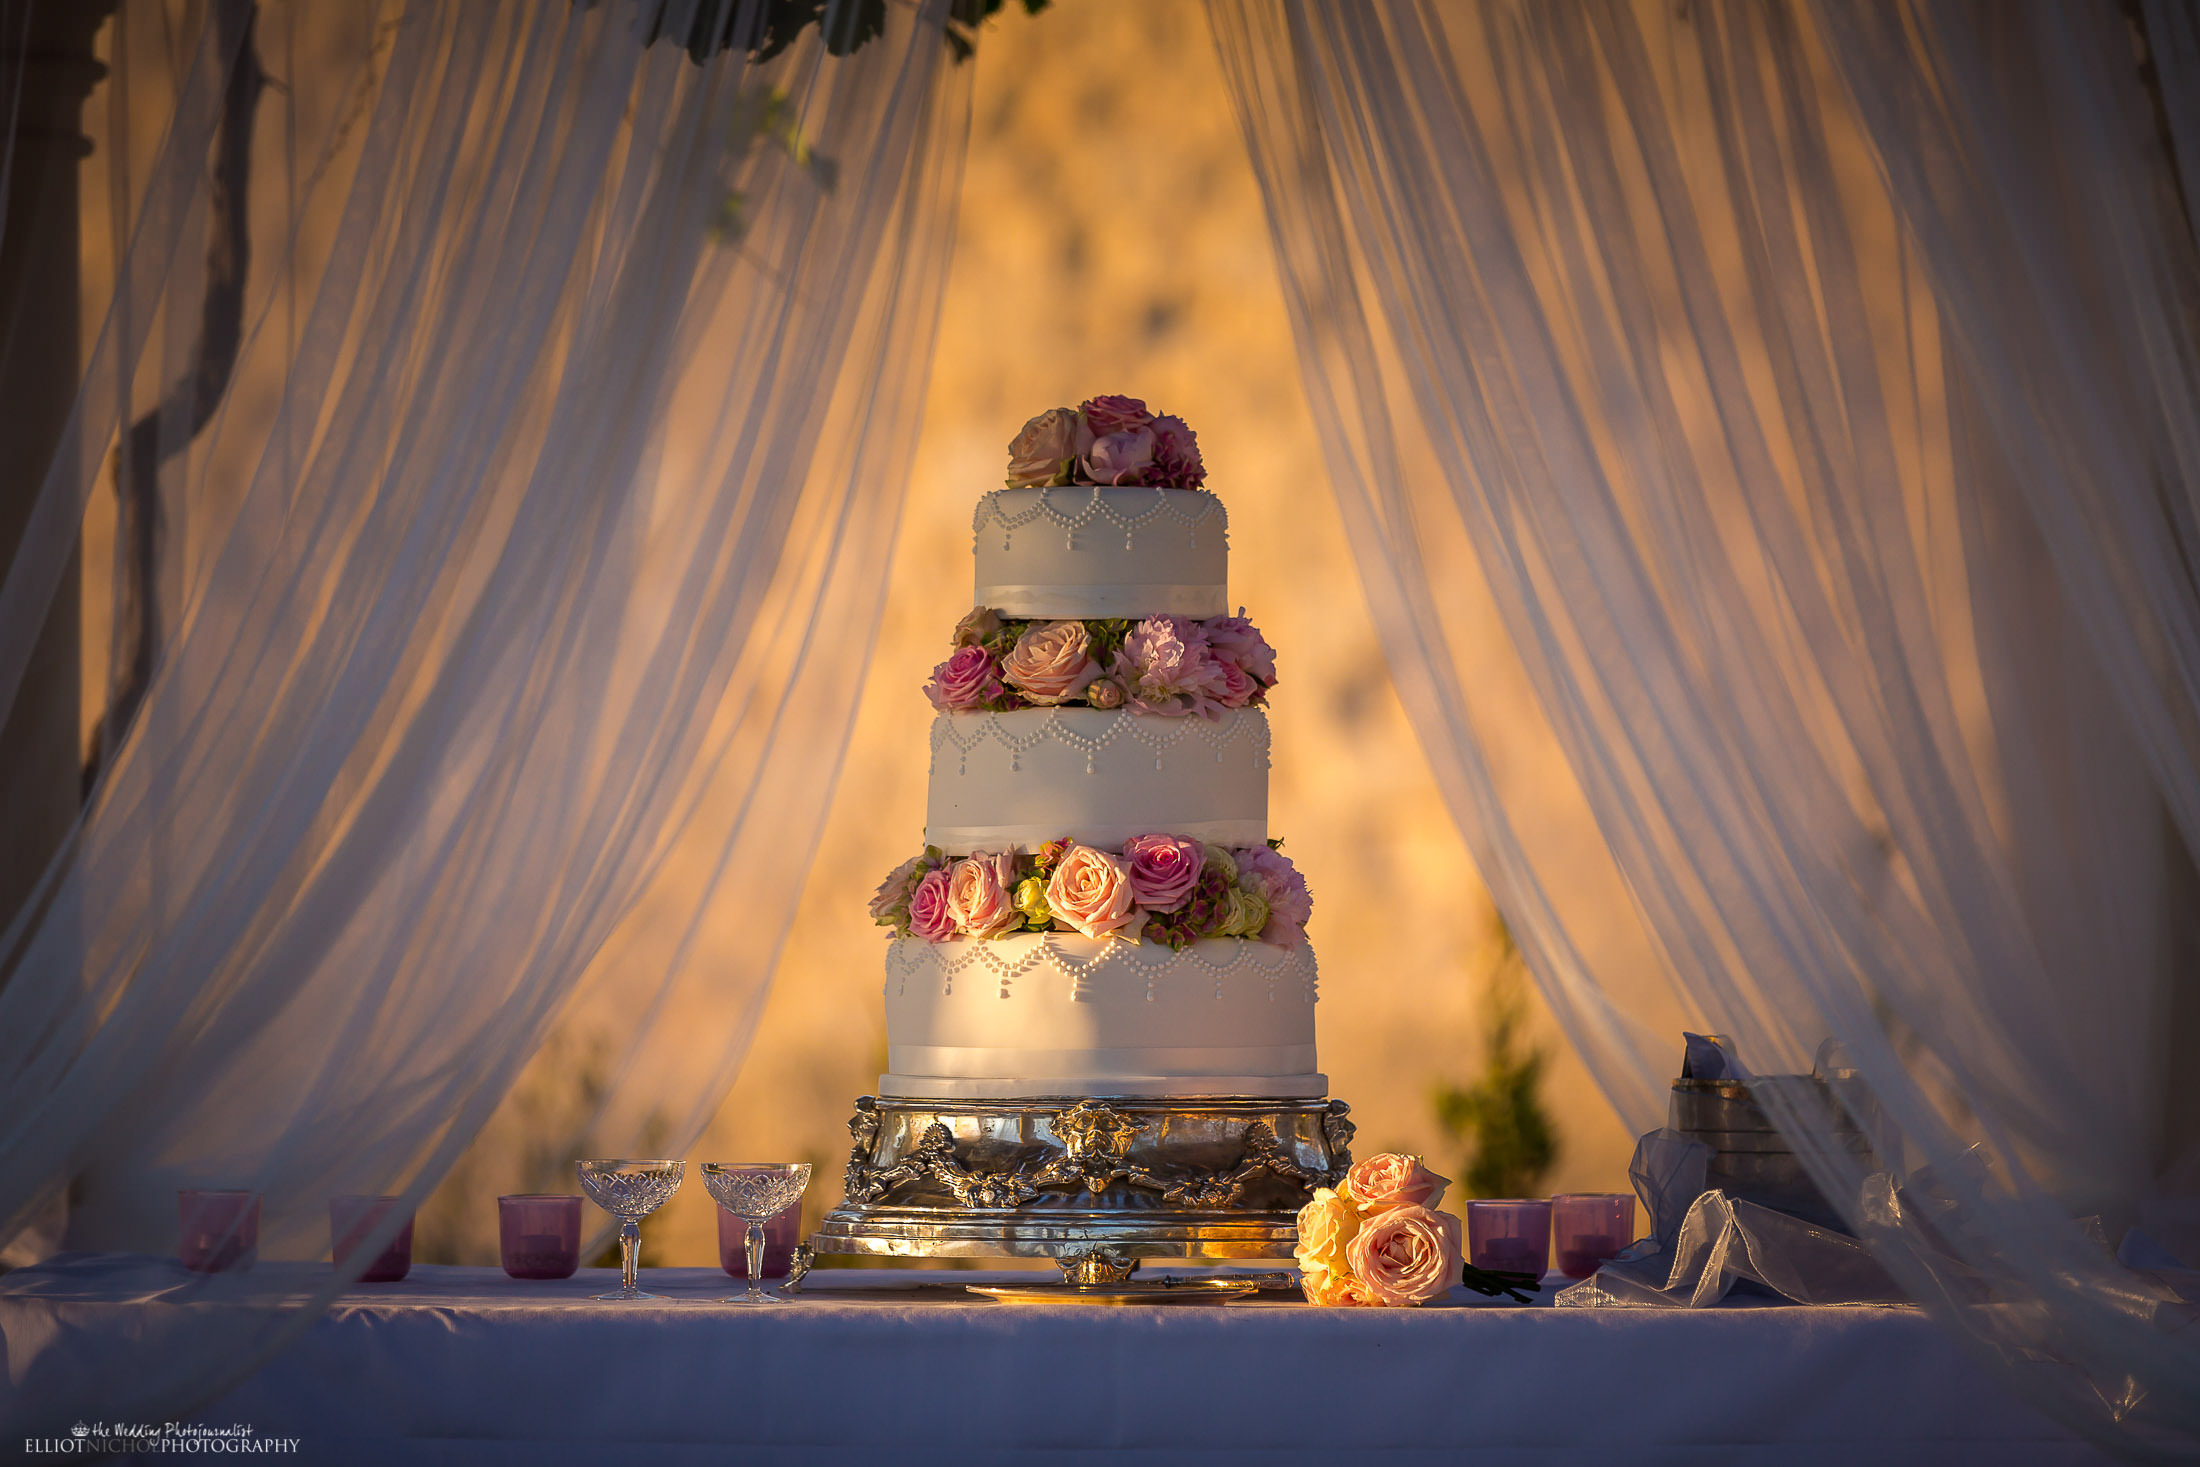 Three tier wedding cake filled with roses. Photo by Elliot Nichol Photography.